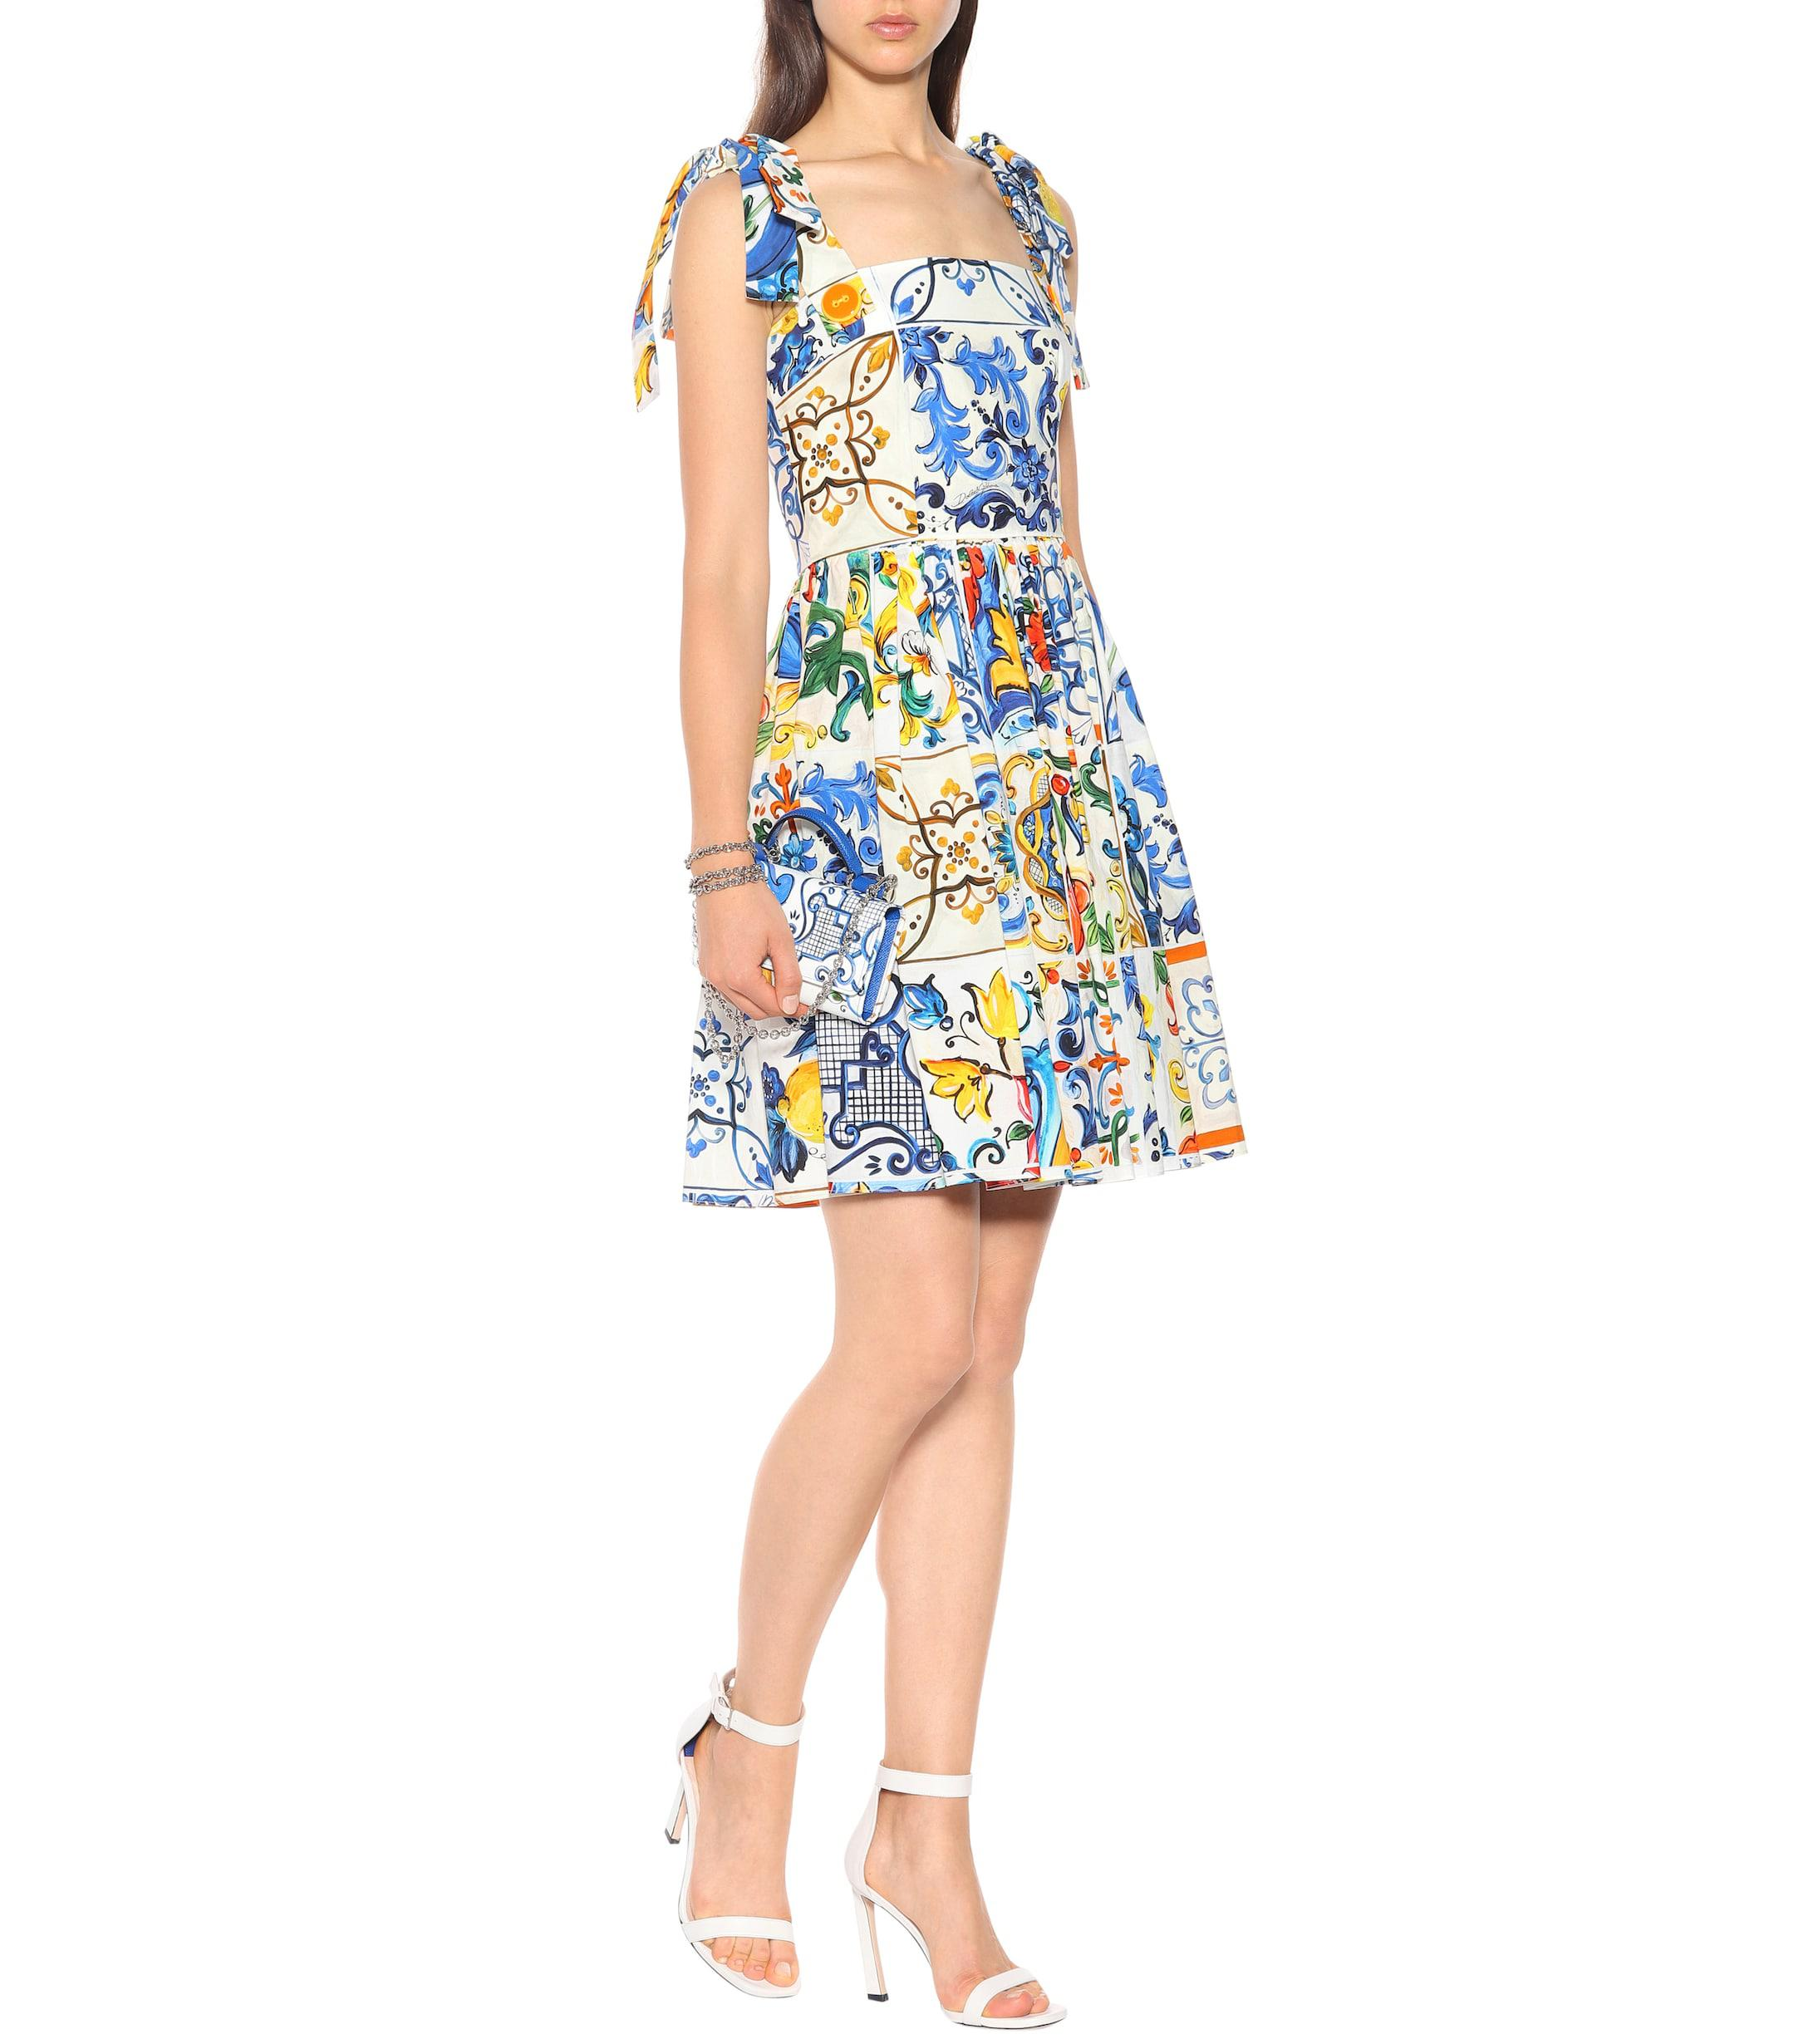 Dolce and Gabbana Dresses On Sale,dolce and gabbana dress,dolce and gabbana dress,